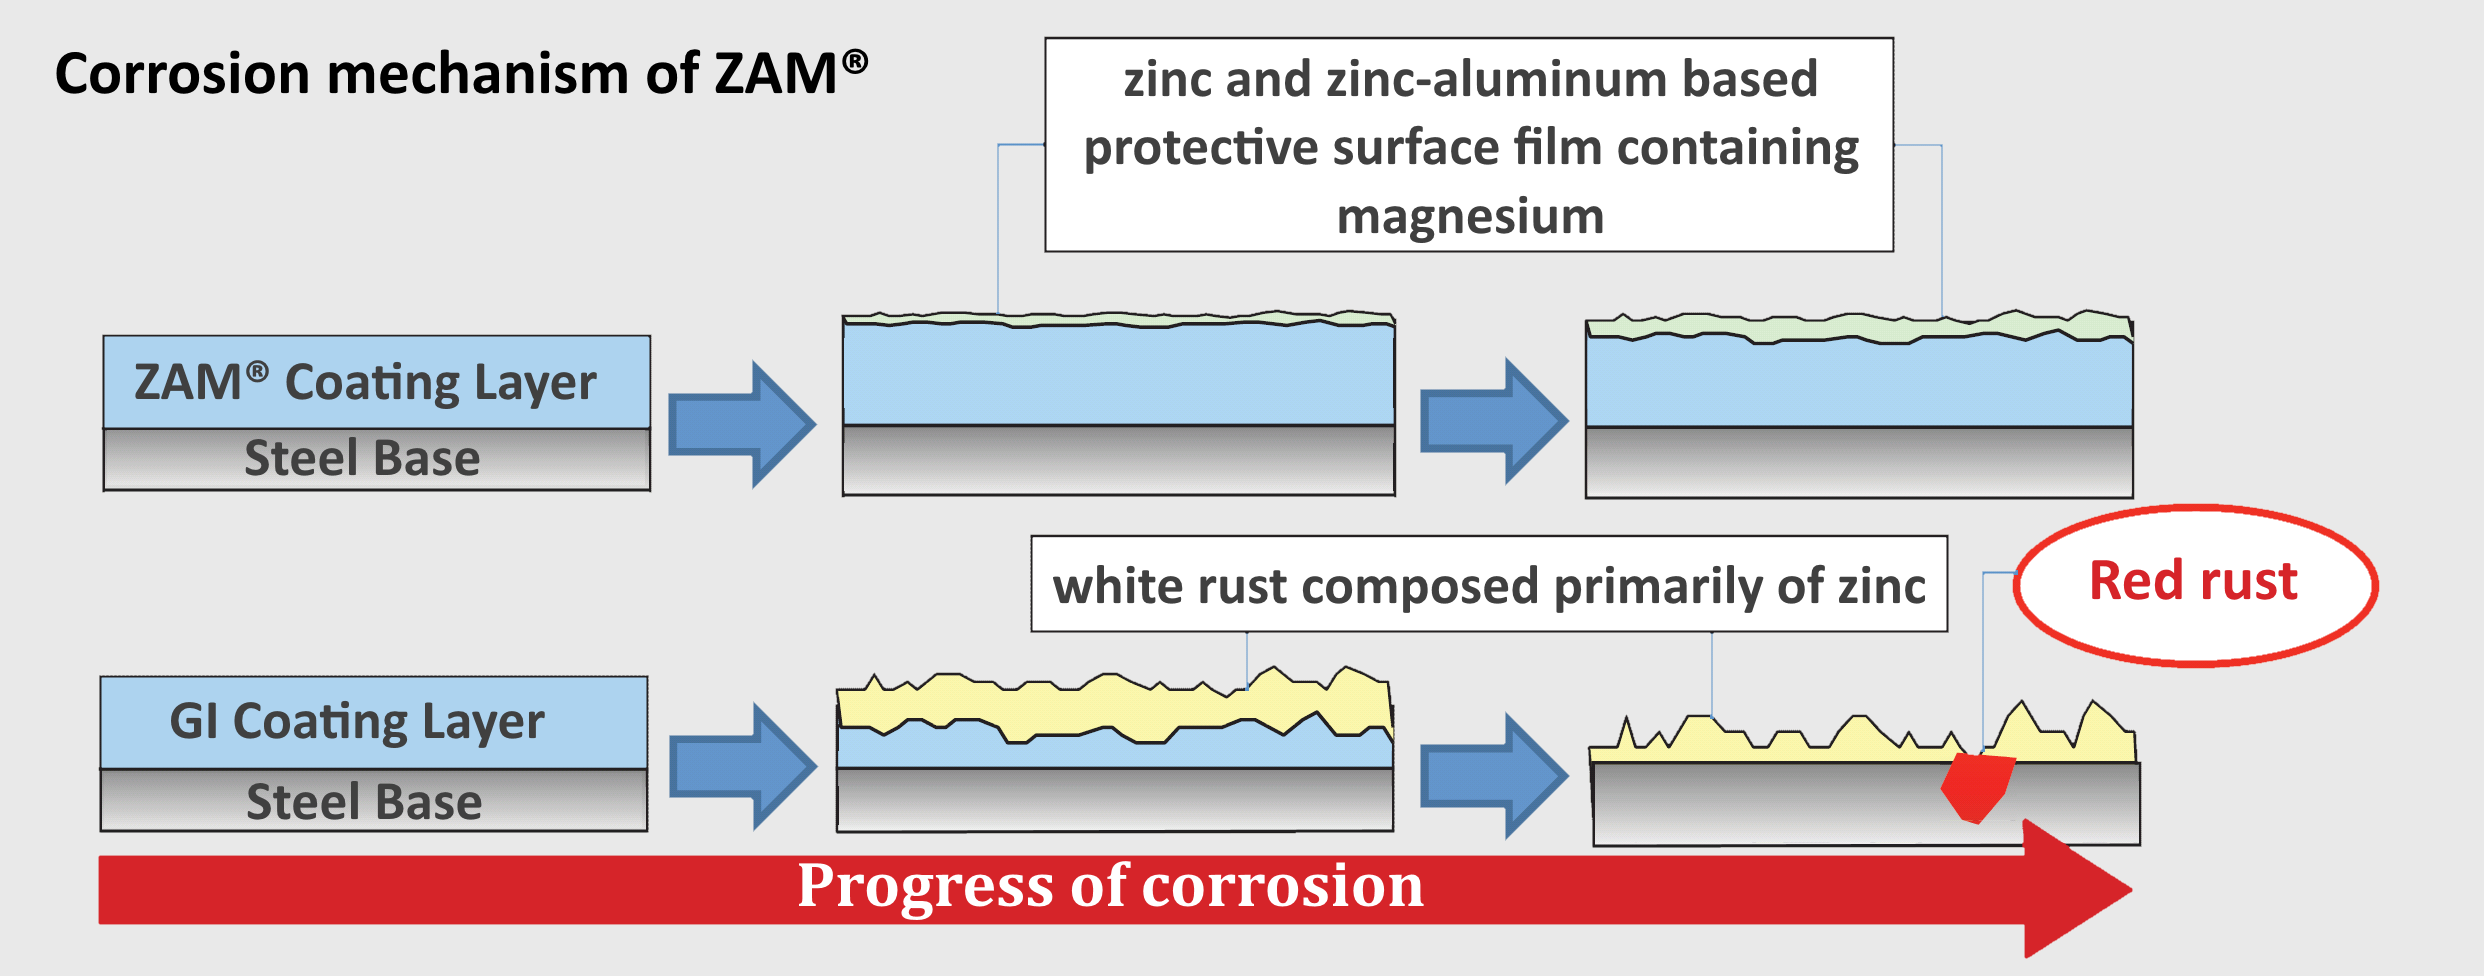 Illustration of the slower progress of corrosion of ZAM® as compared to Galvanized